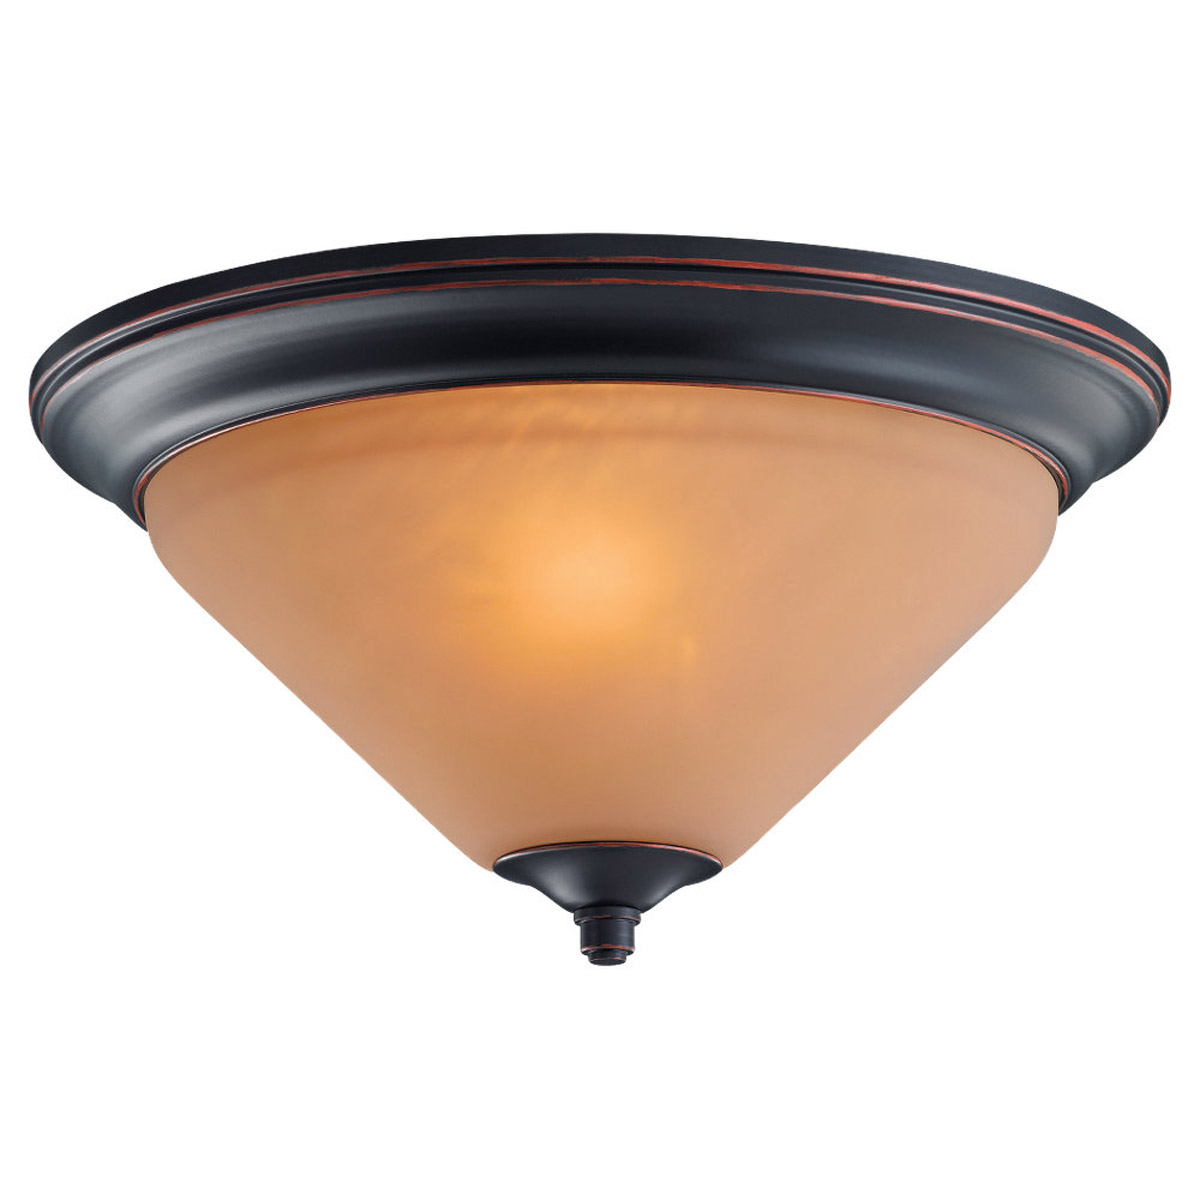 Sea Gull Lighting Belair 2 Light Flush Mount in Vintage Brown 75790-862